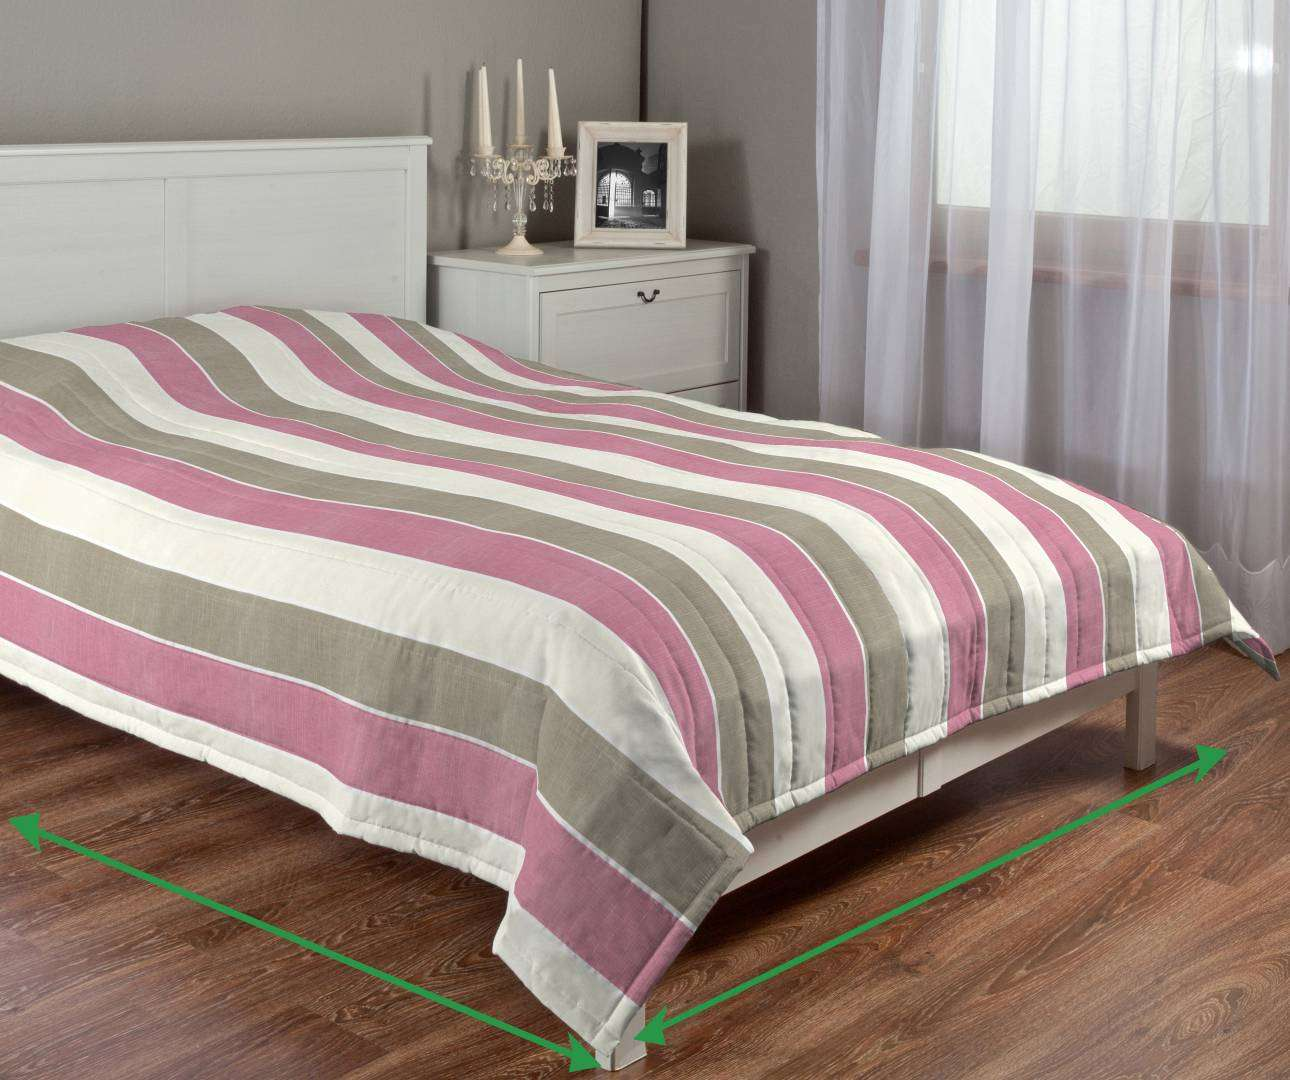 Quilted throw (vertical quilt pattern) in collection Cardiff, fabric: 136-32